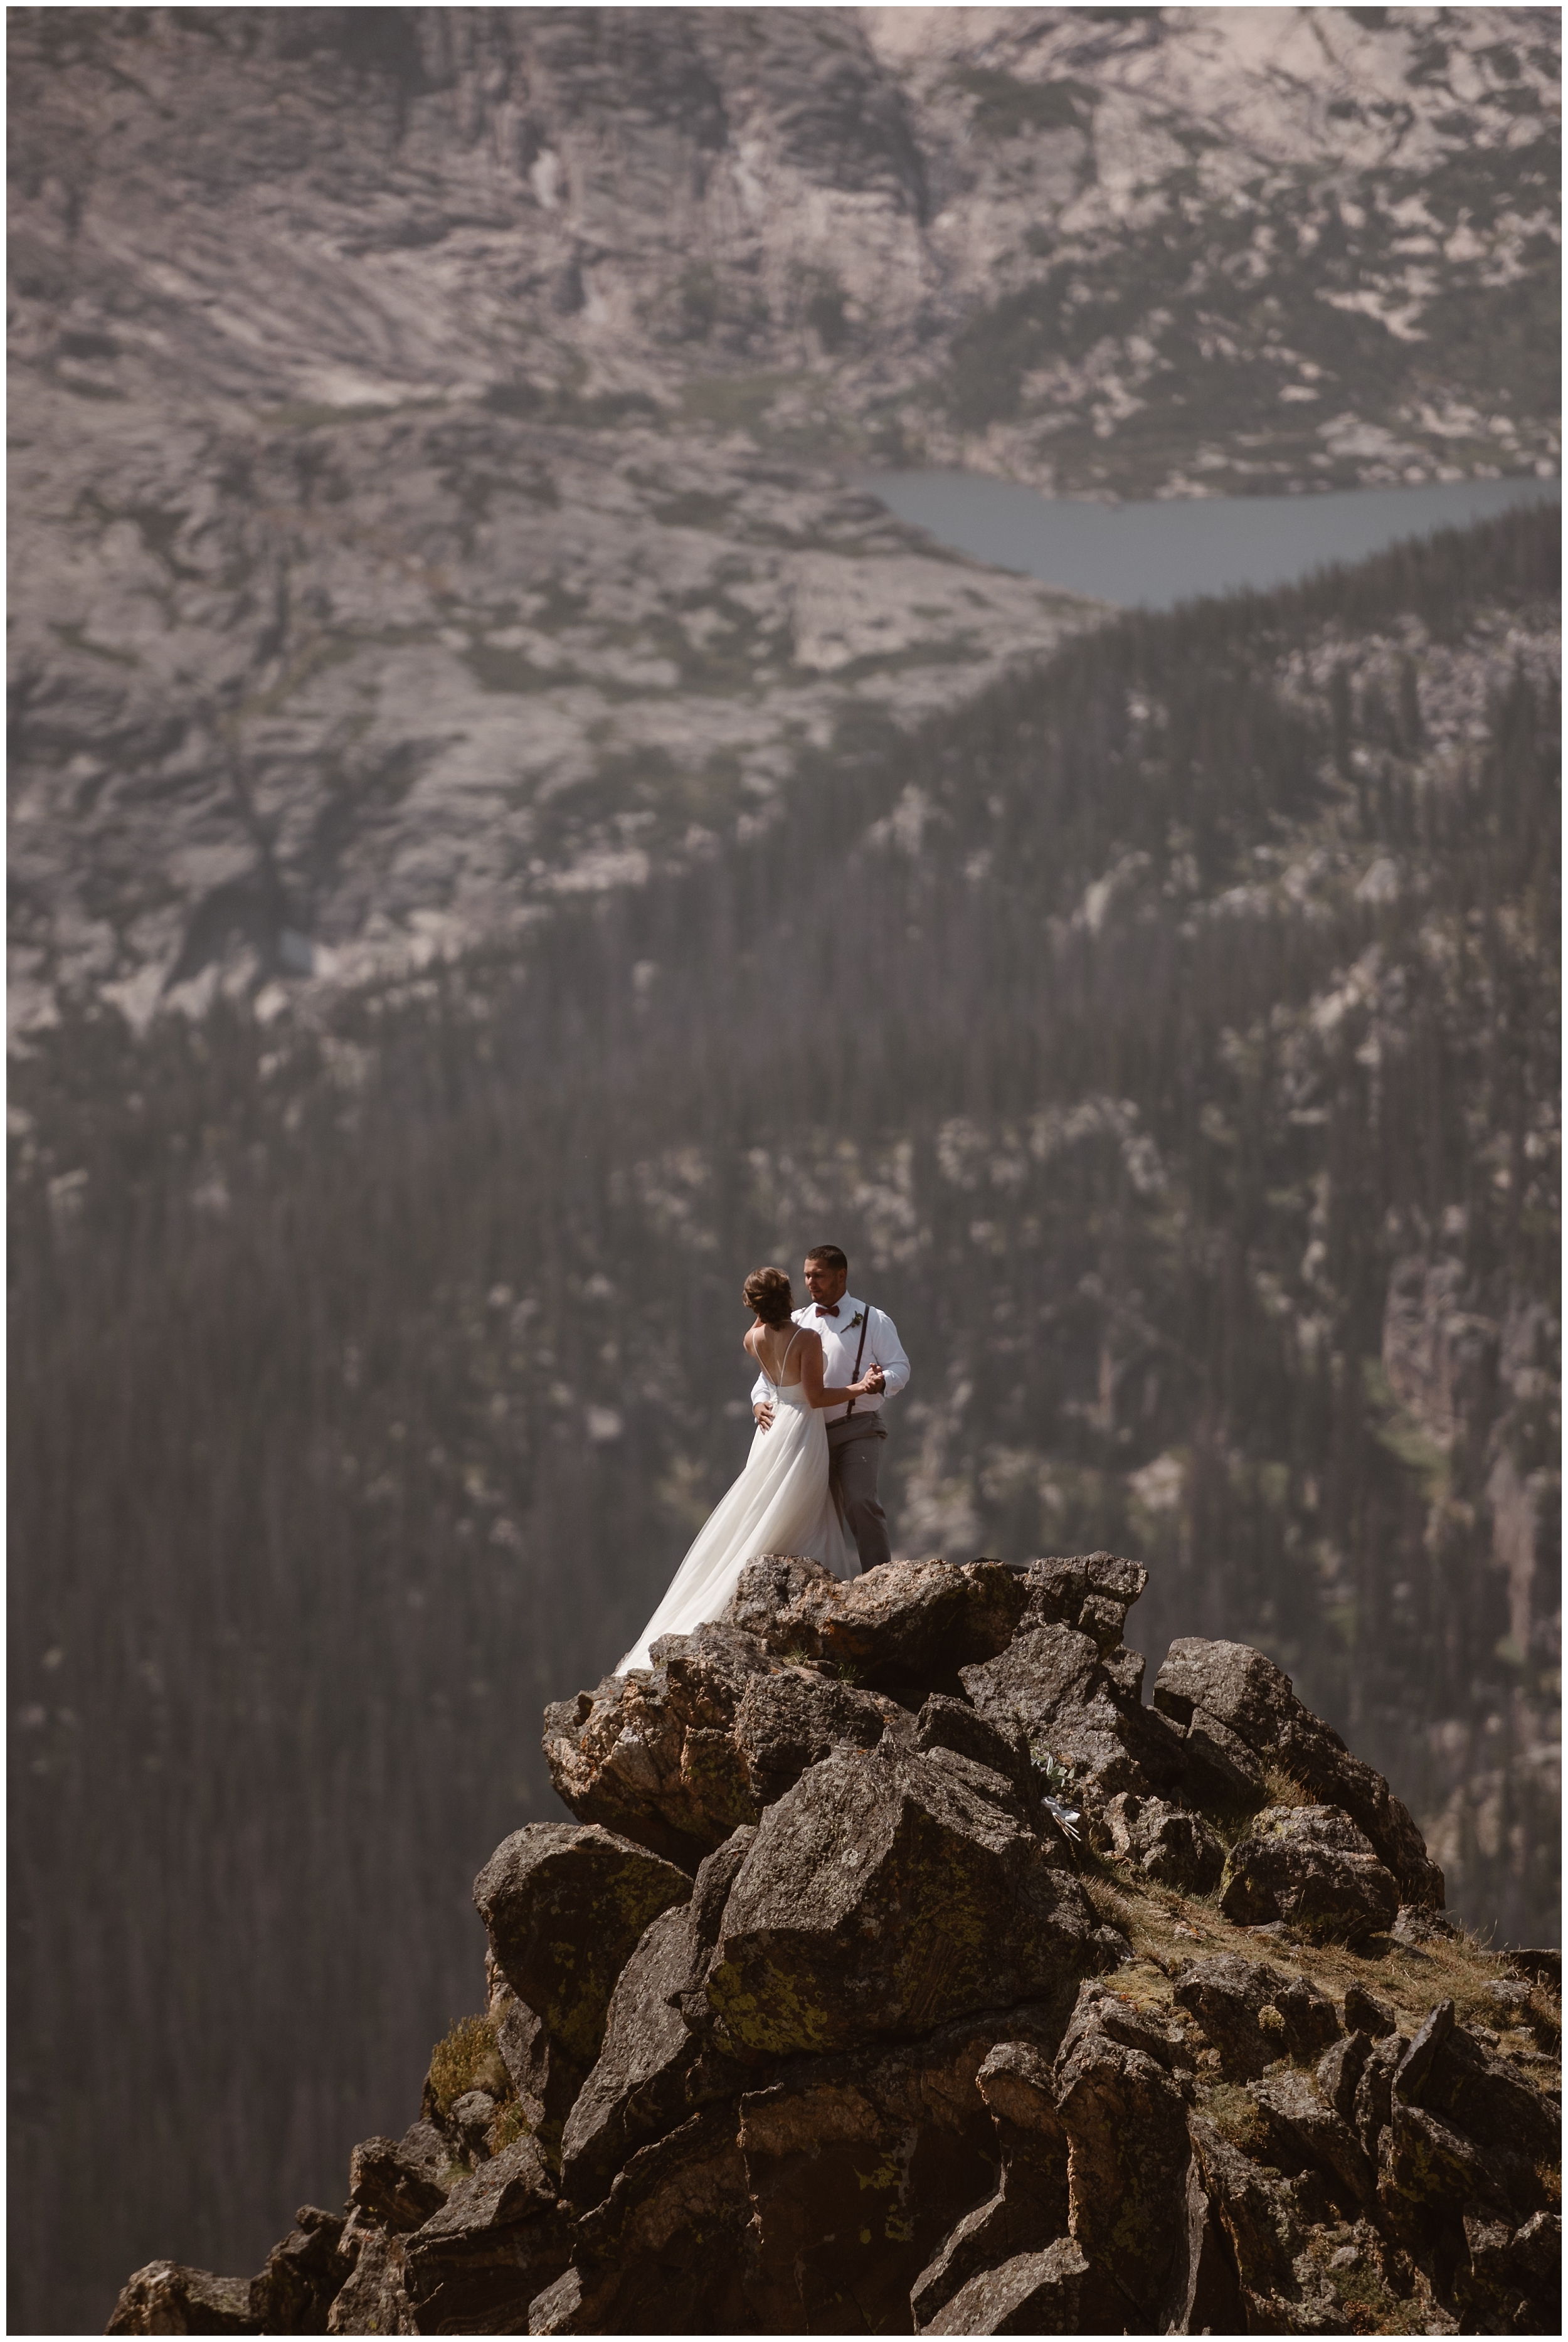 A bride and groom hold each other close as they stand at the top of a rocky mountain peak. Behind them, a forest full of tall, gorgeous pines is shown, as well as an alpine lake off in the distance.